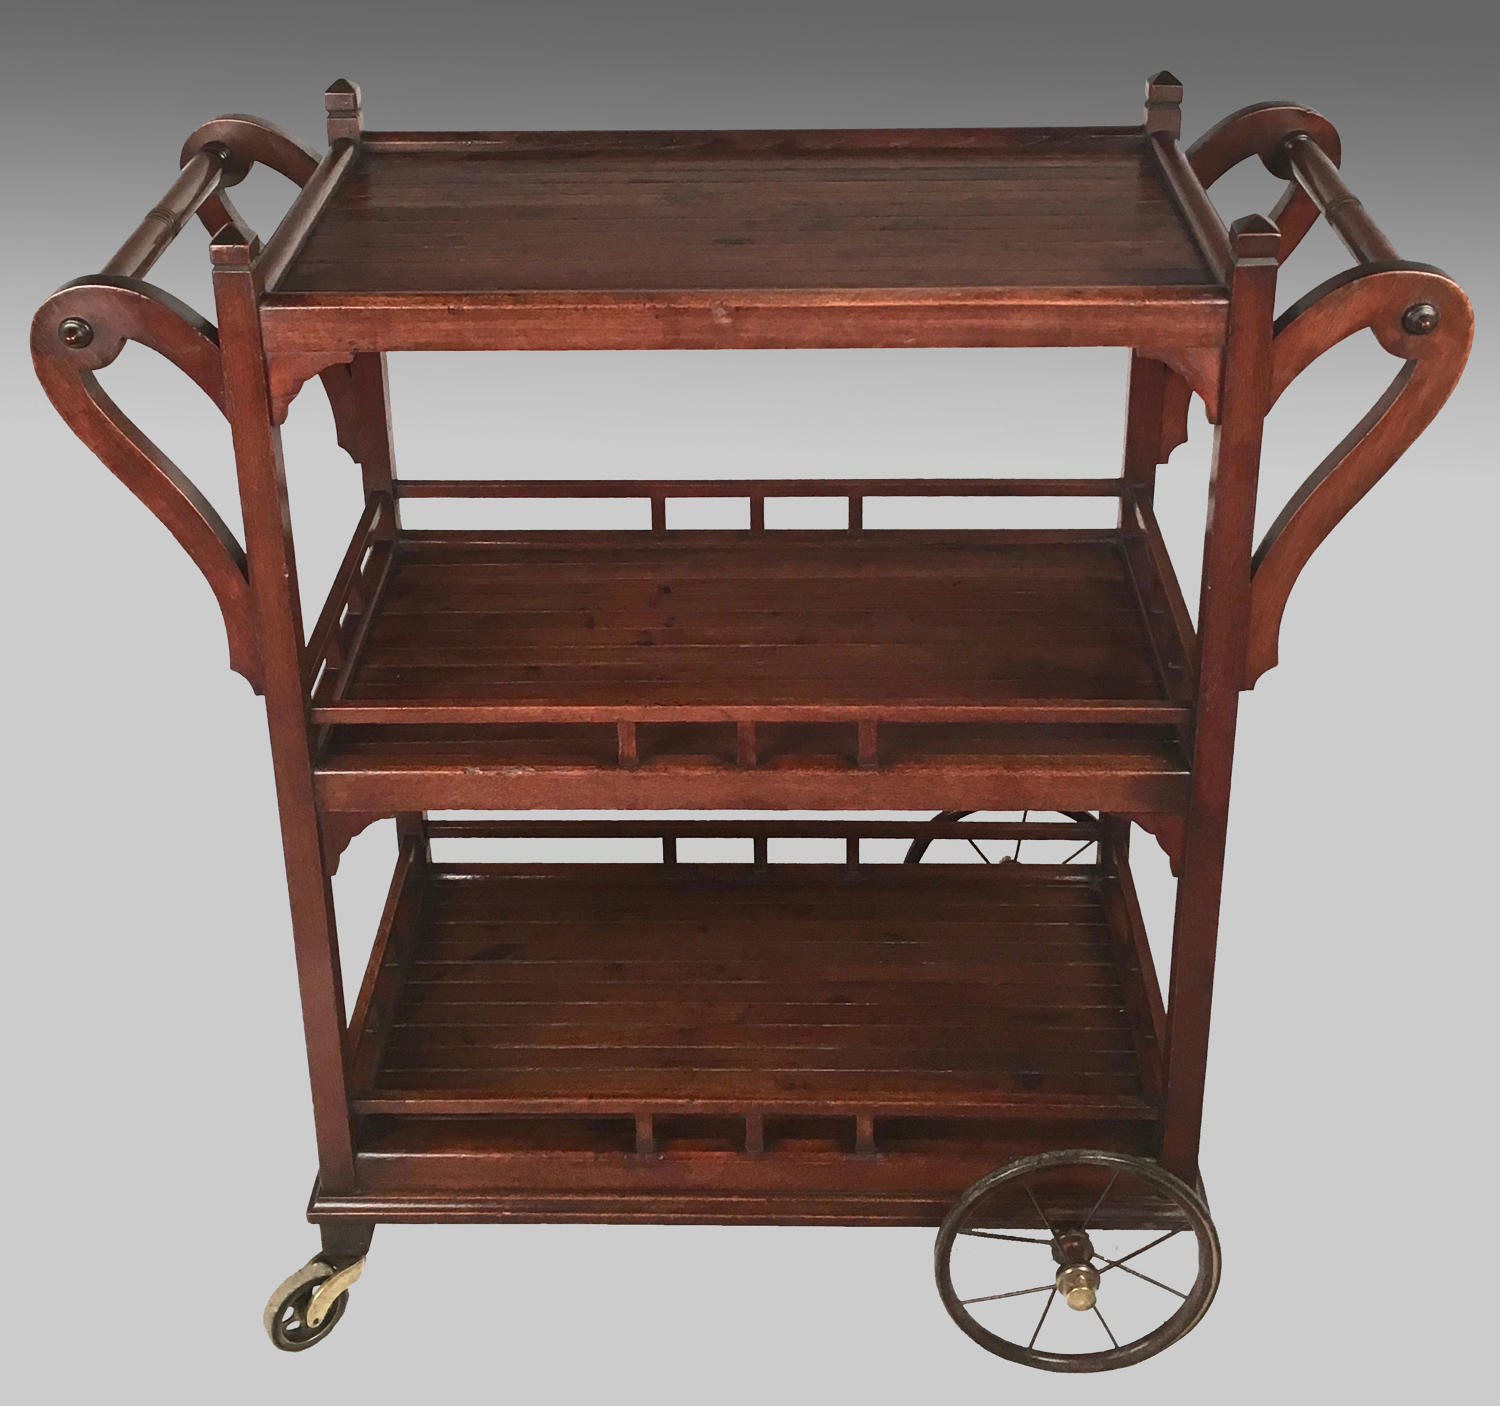 1920's ship's teak serving trolley